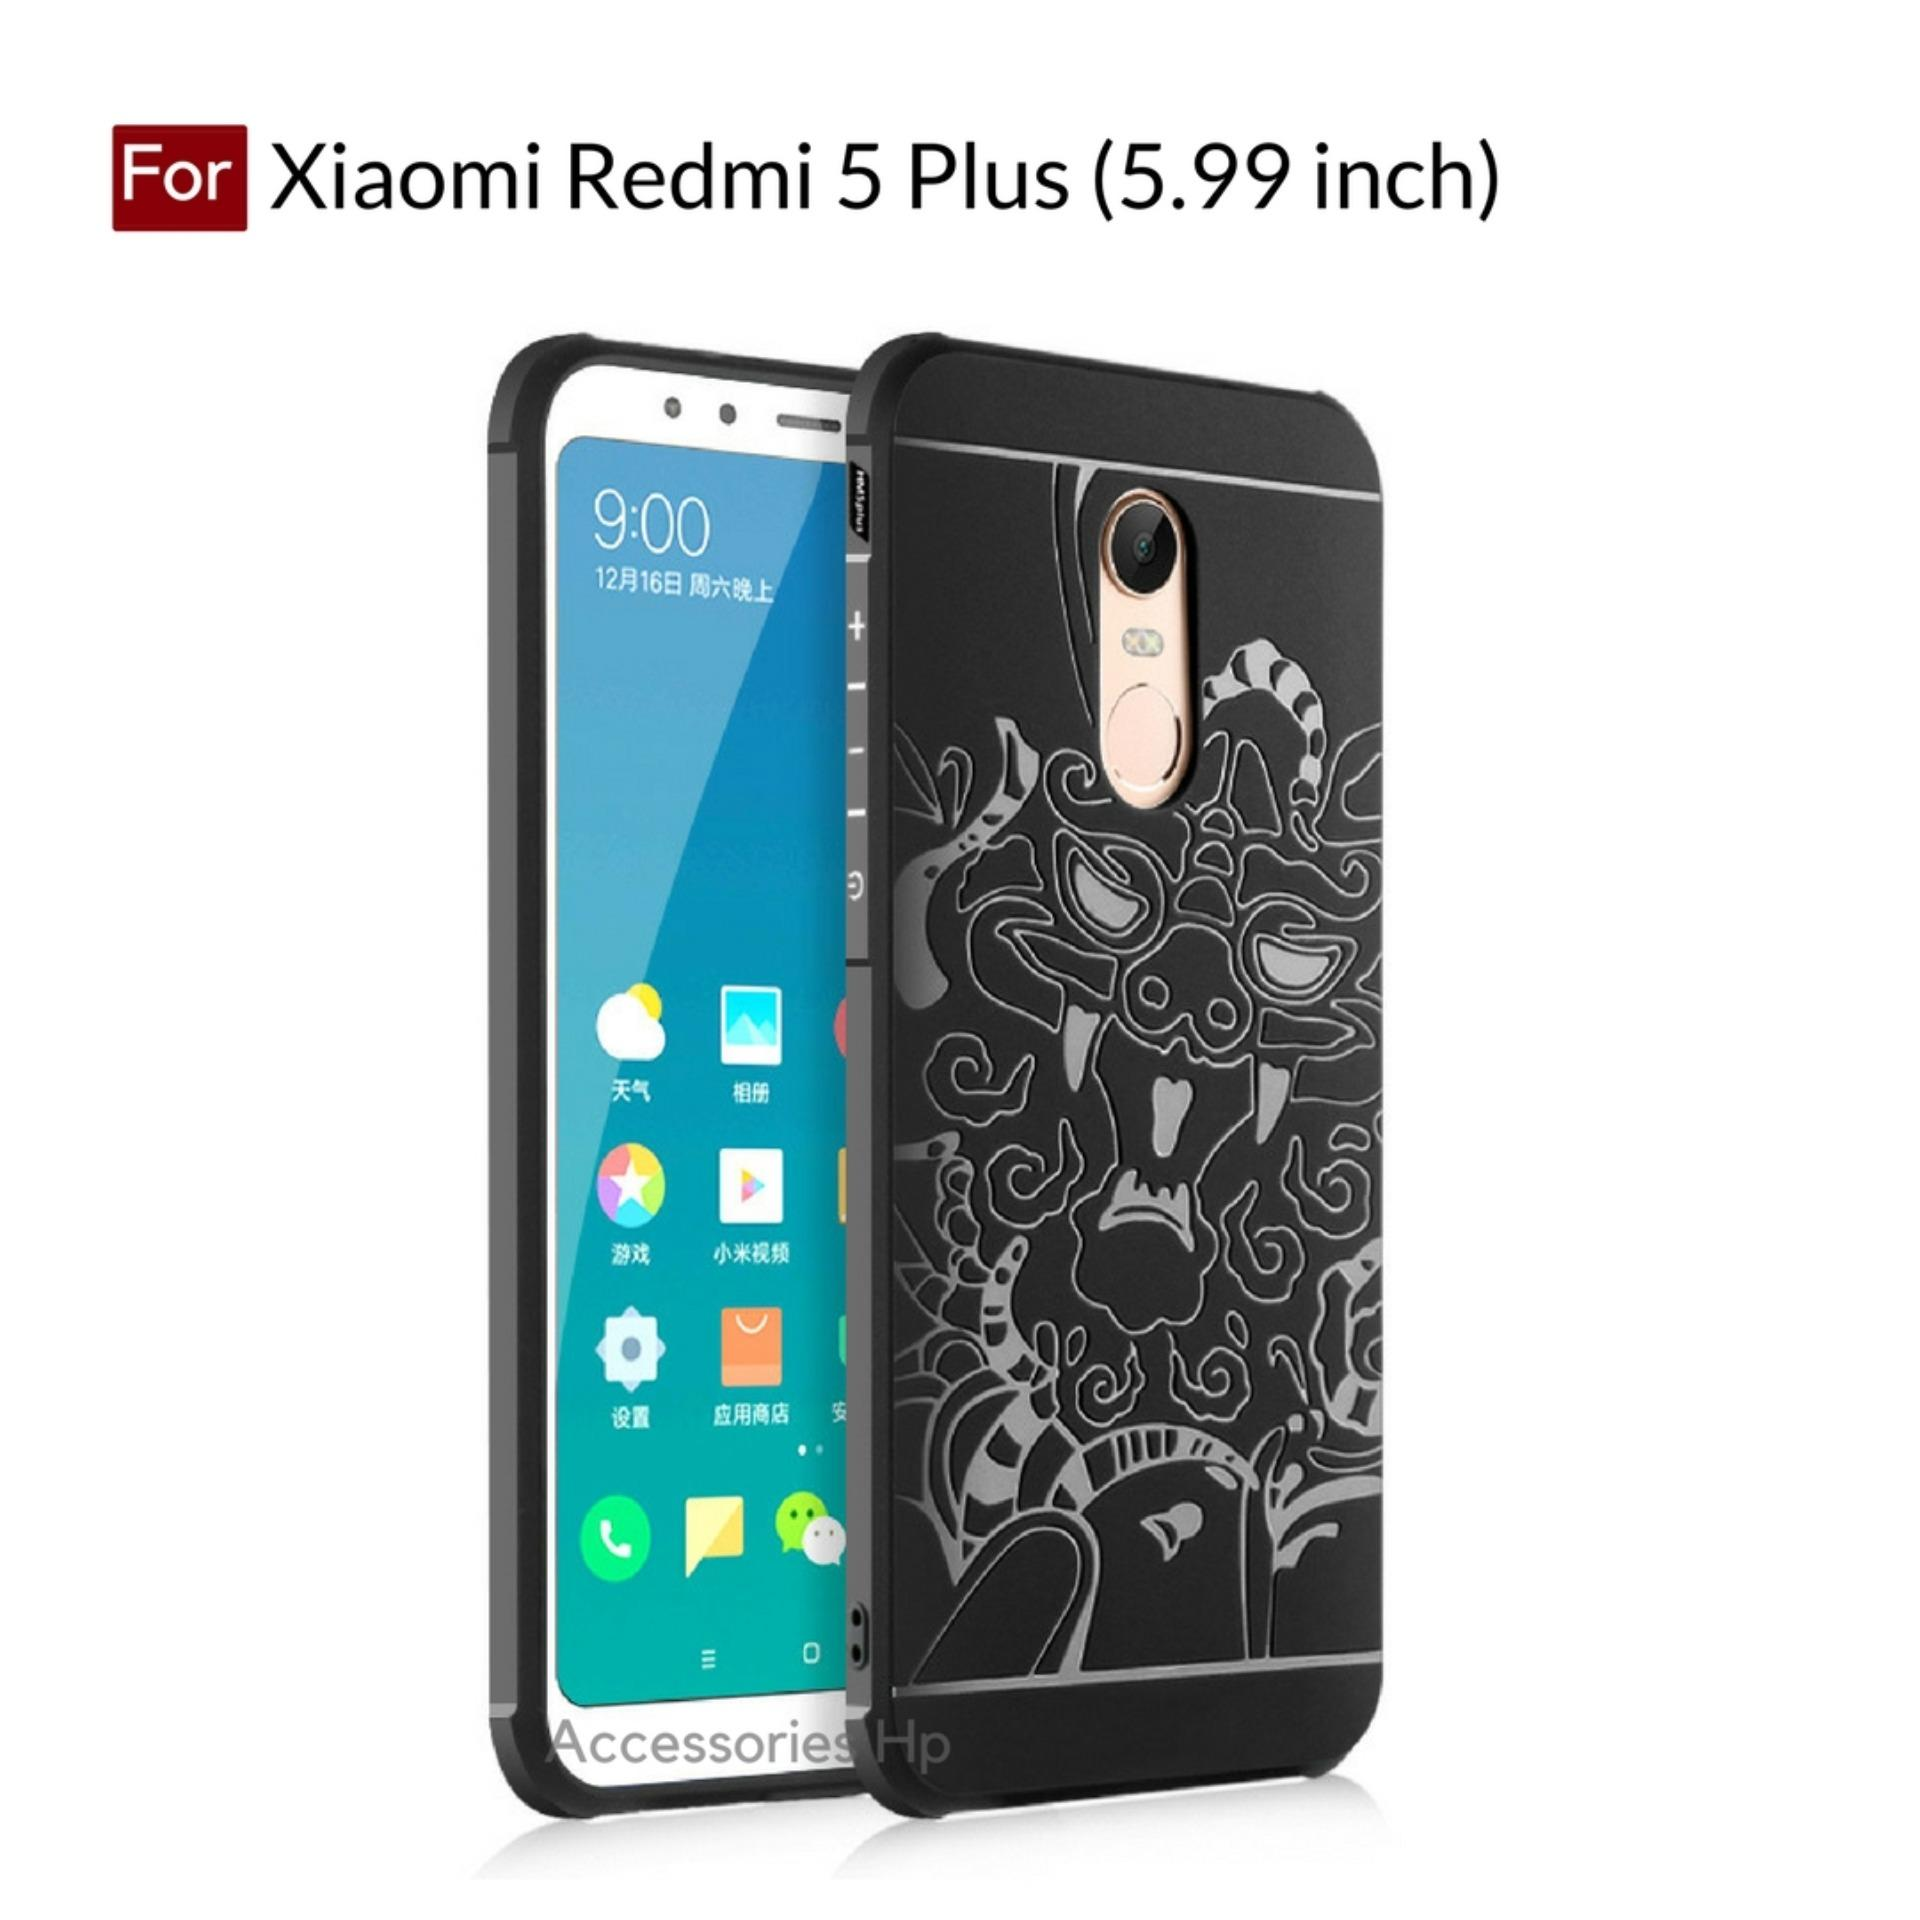 Accessories HP Dragon Shockproof Hybrid Case for Xiaomi Redmi 5 Plus (5.99 inch) - Black